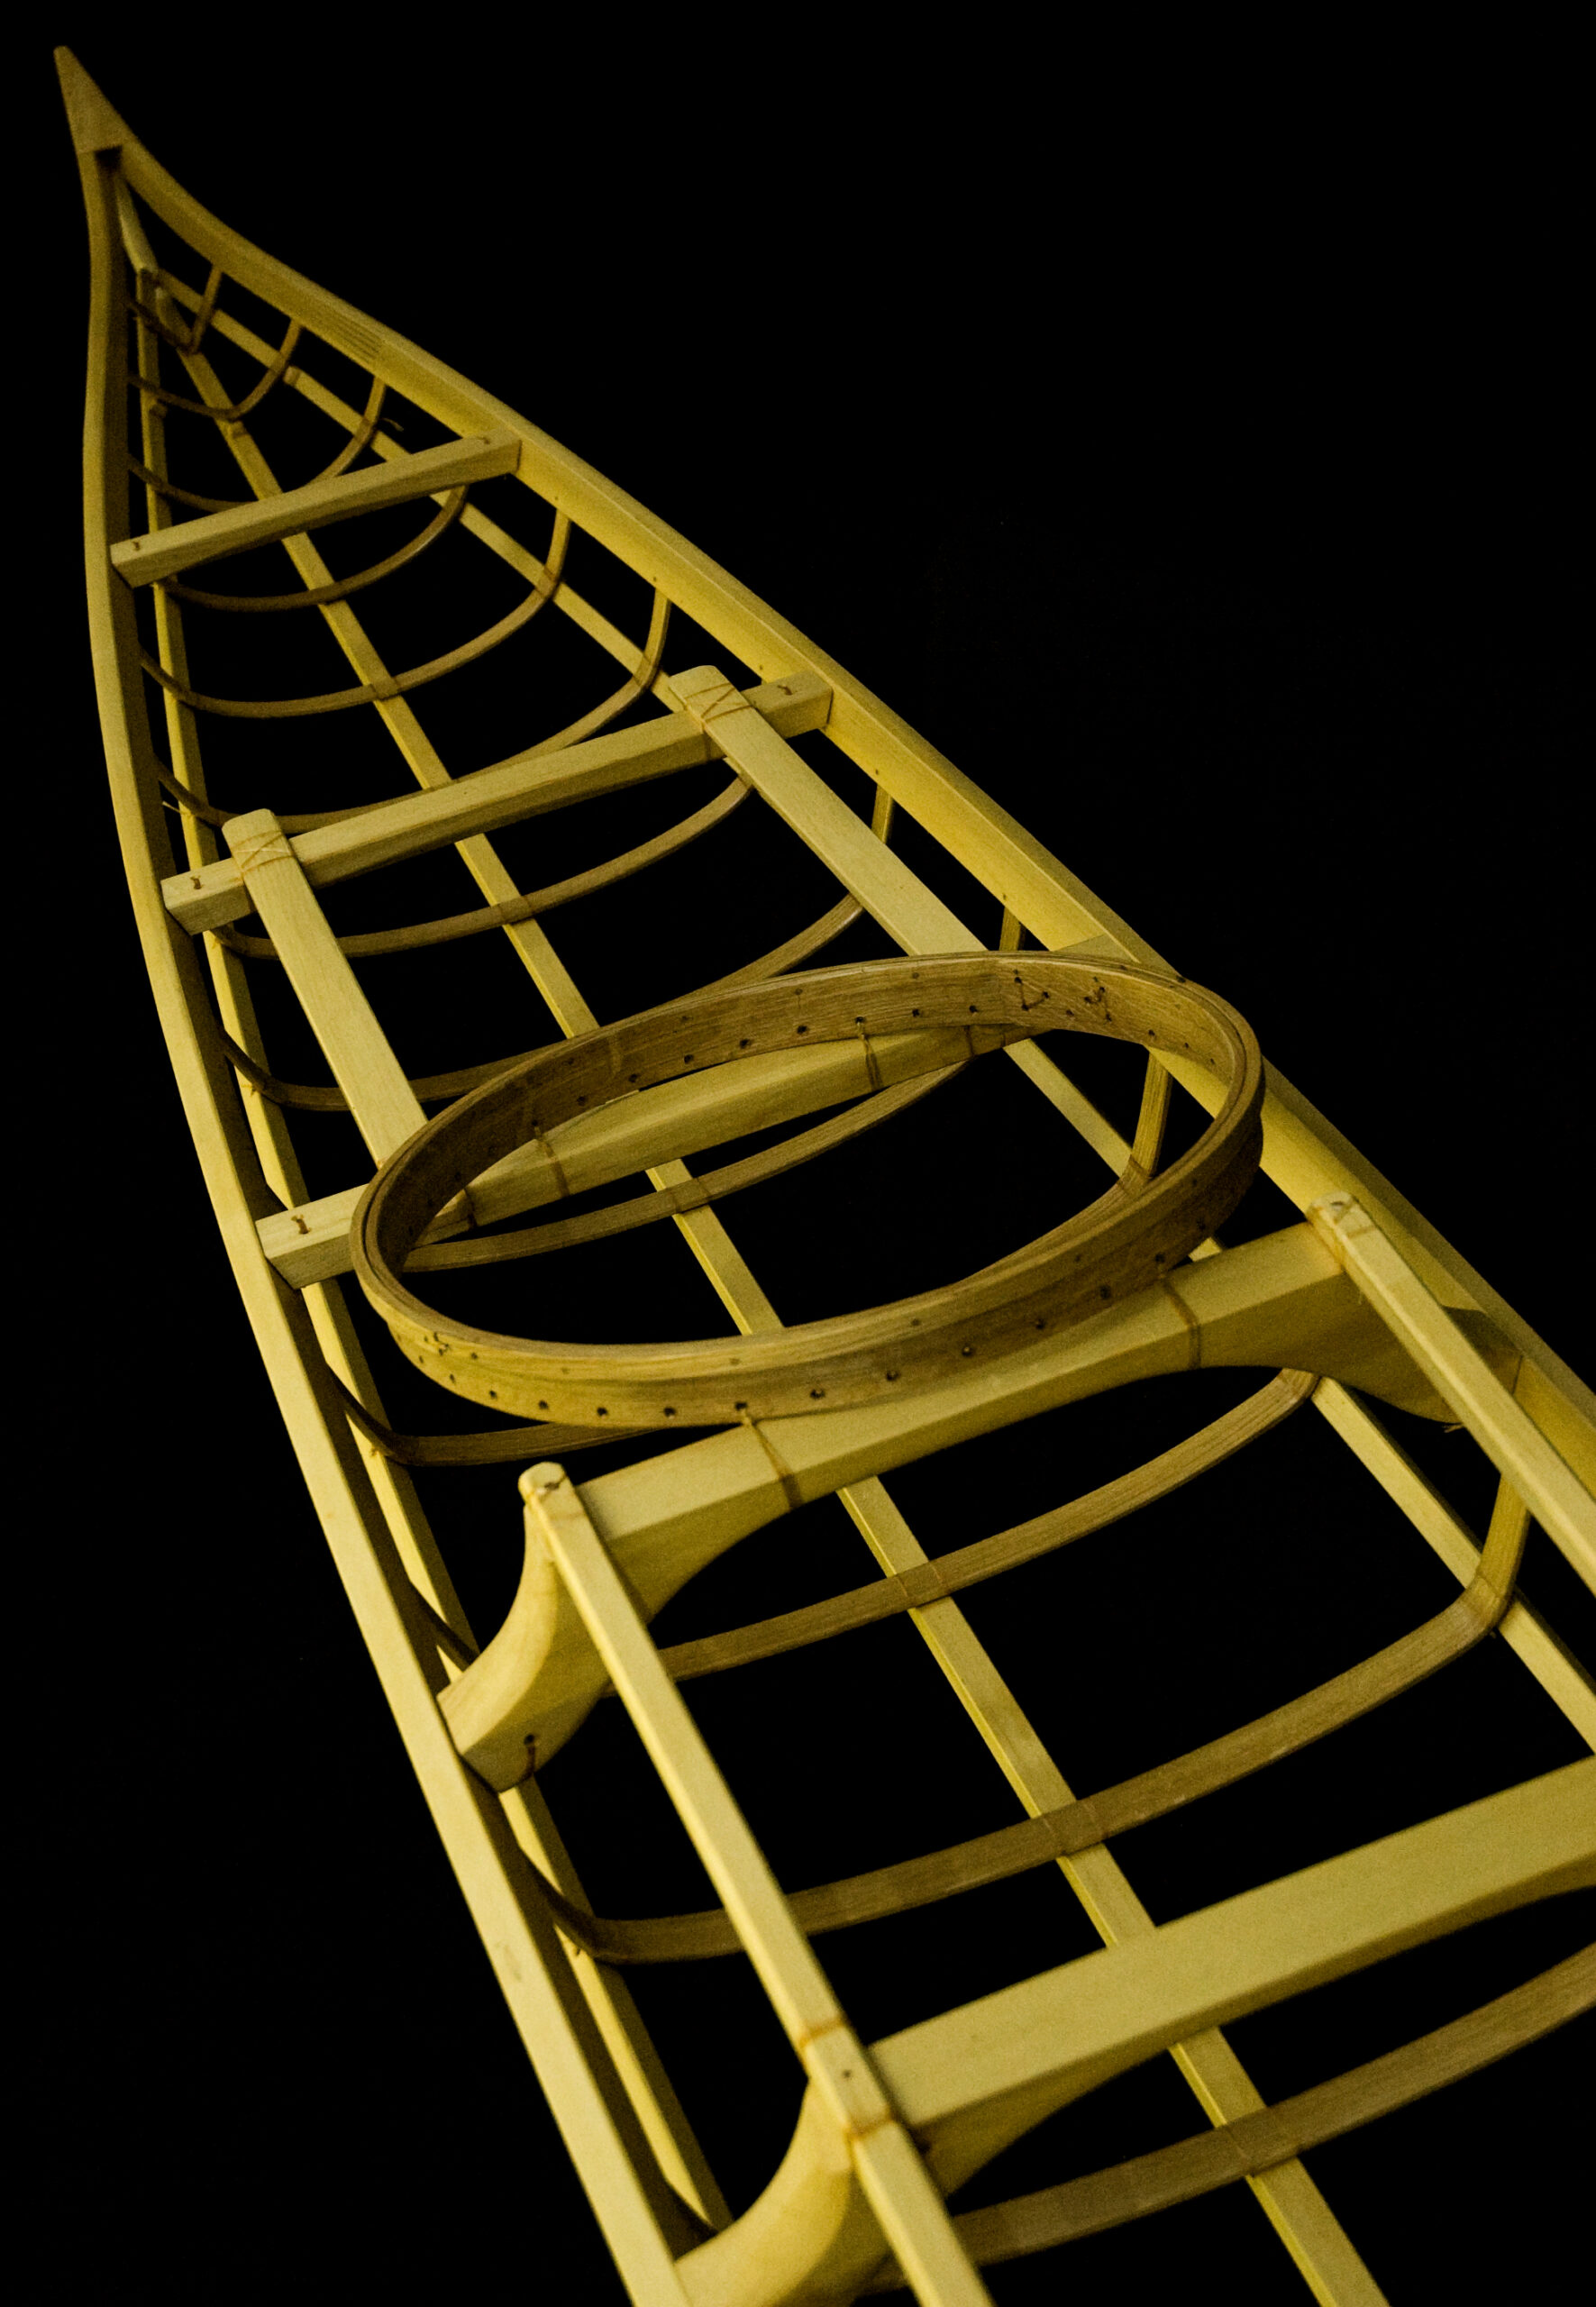 Alaskan Yellow Cedar Wooden Kayak frame by Nick Schade